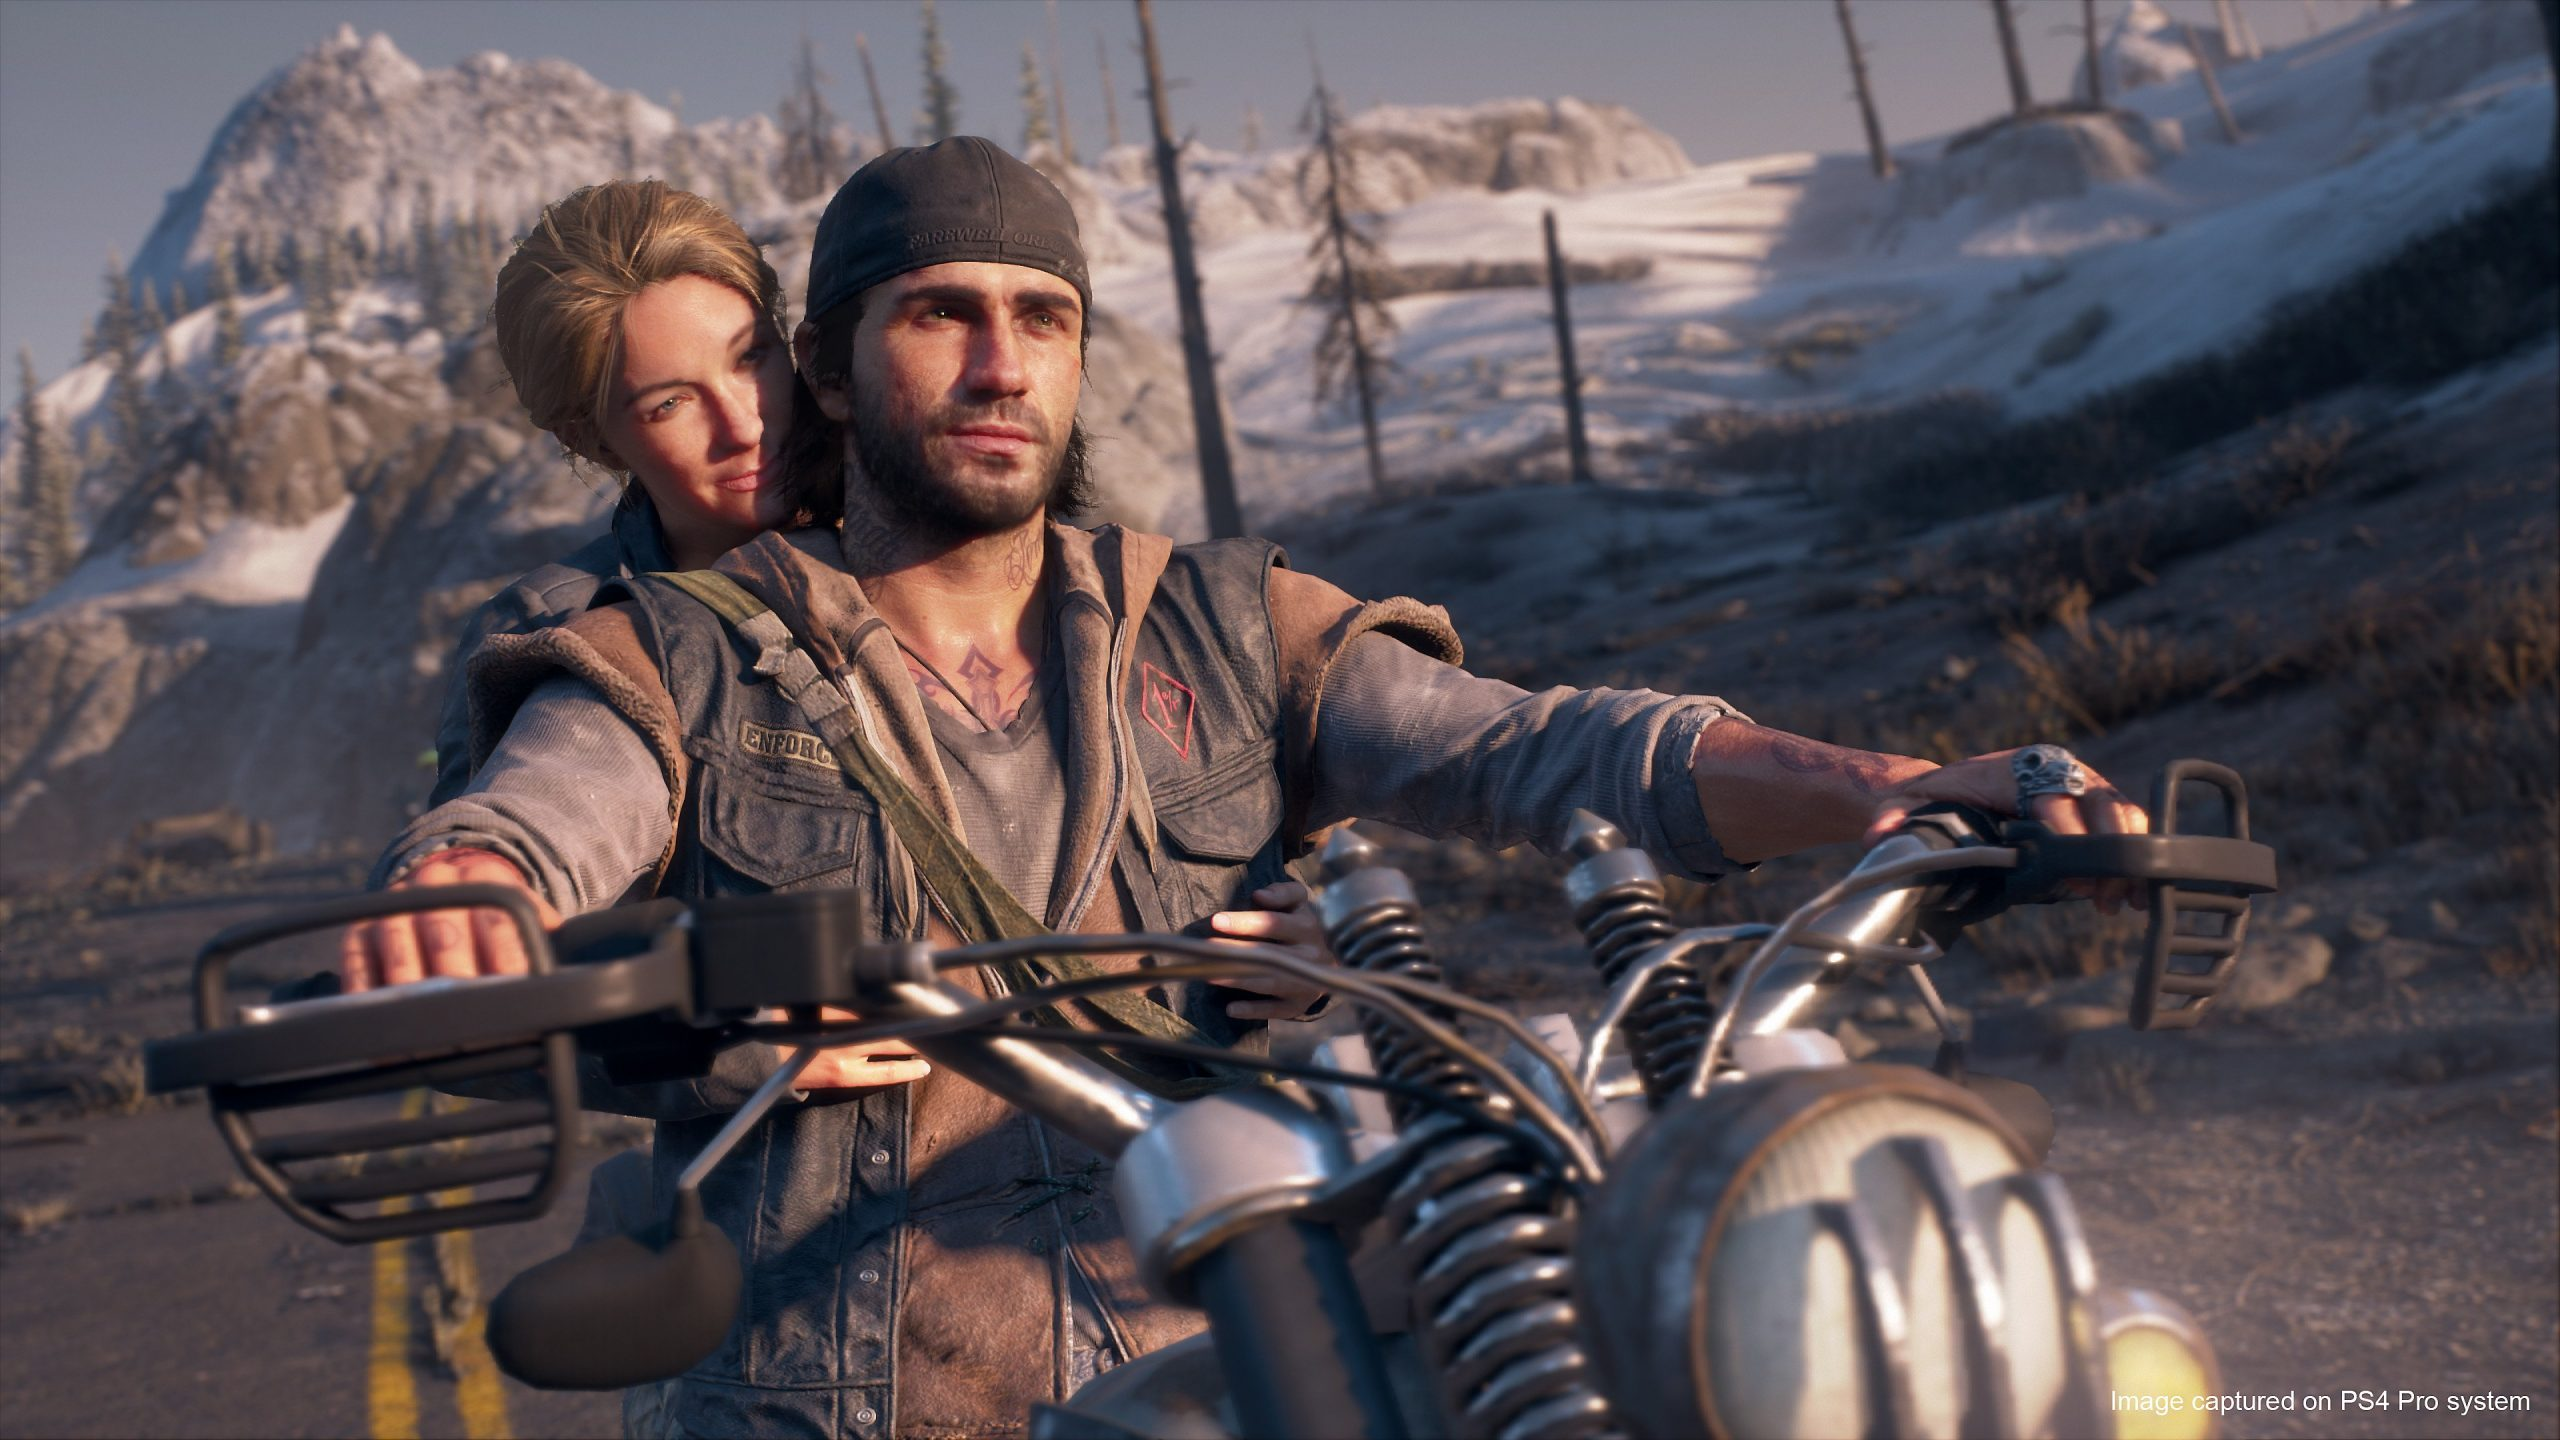 days gone veredito vale a pena critica review analise